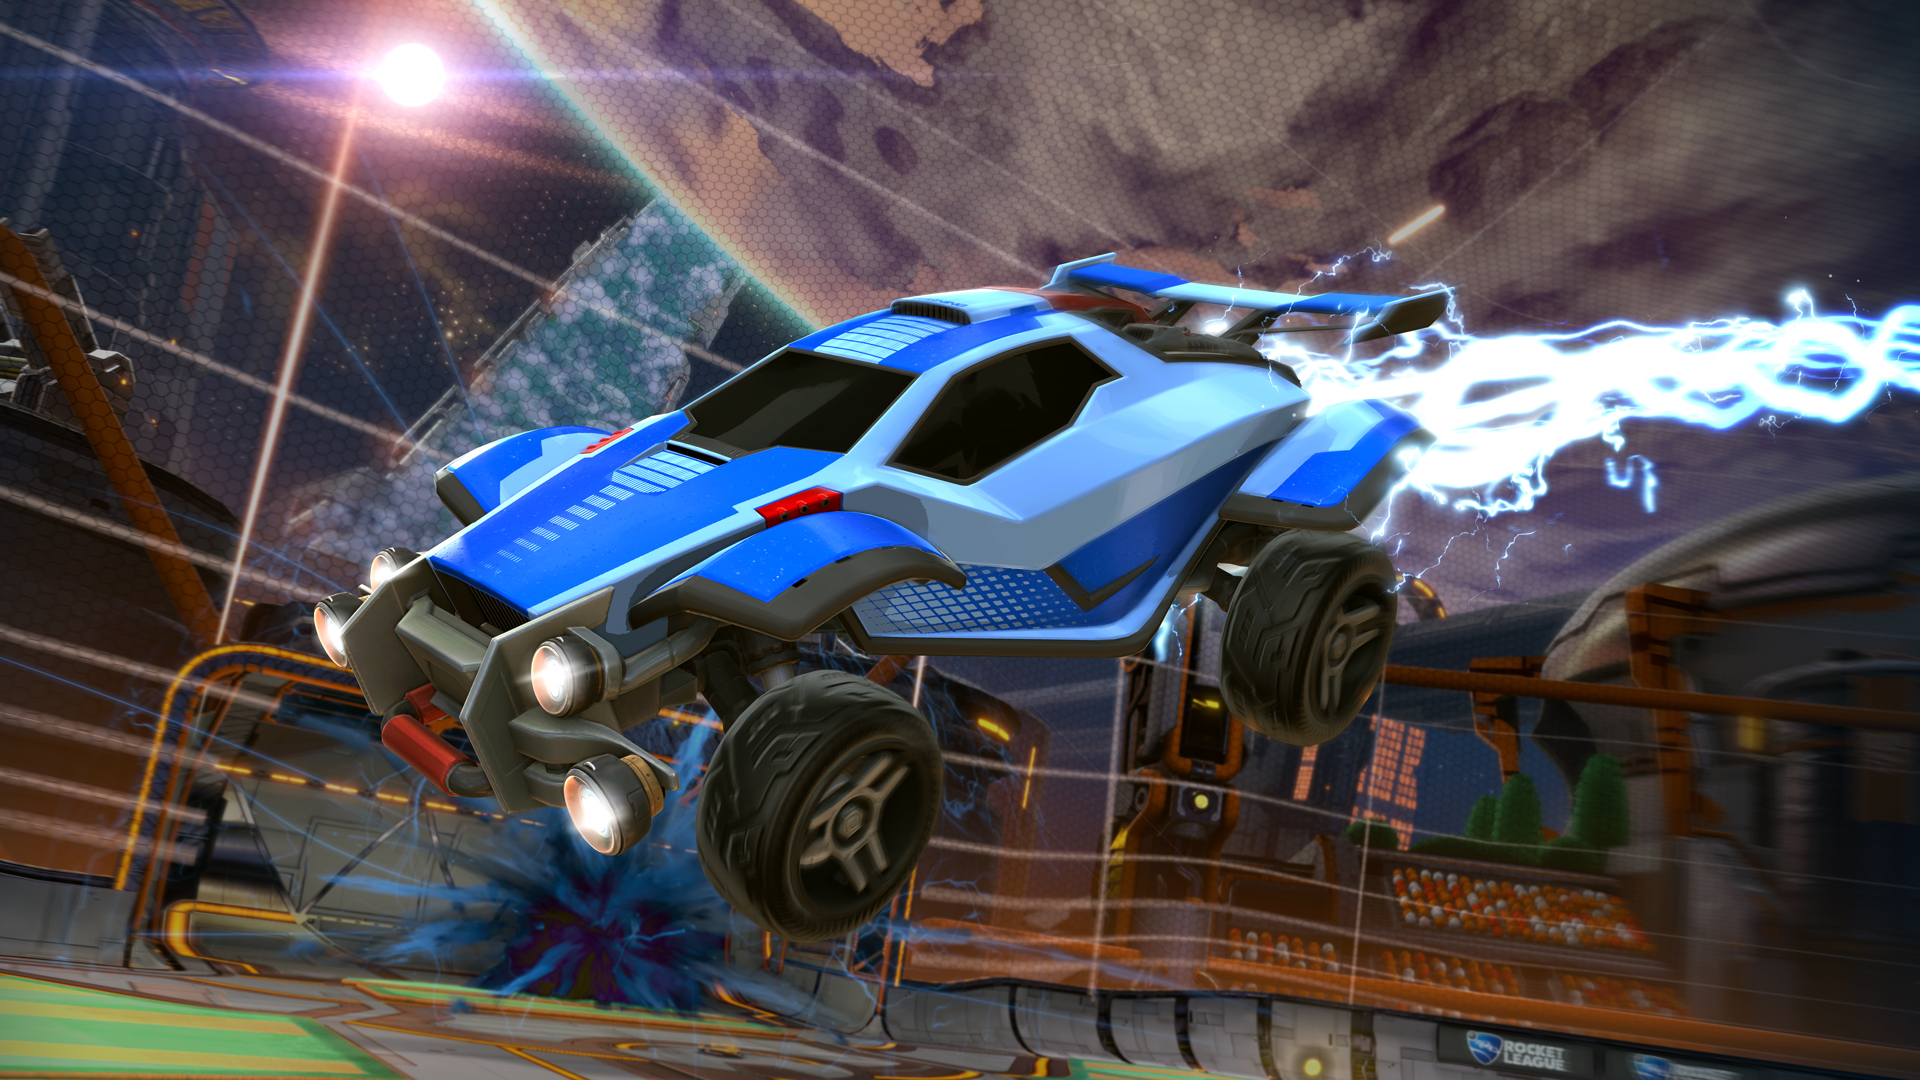 'Rocket League' is adding PlayStation 4 Pro support